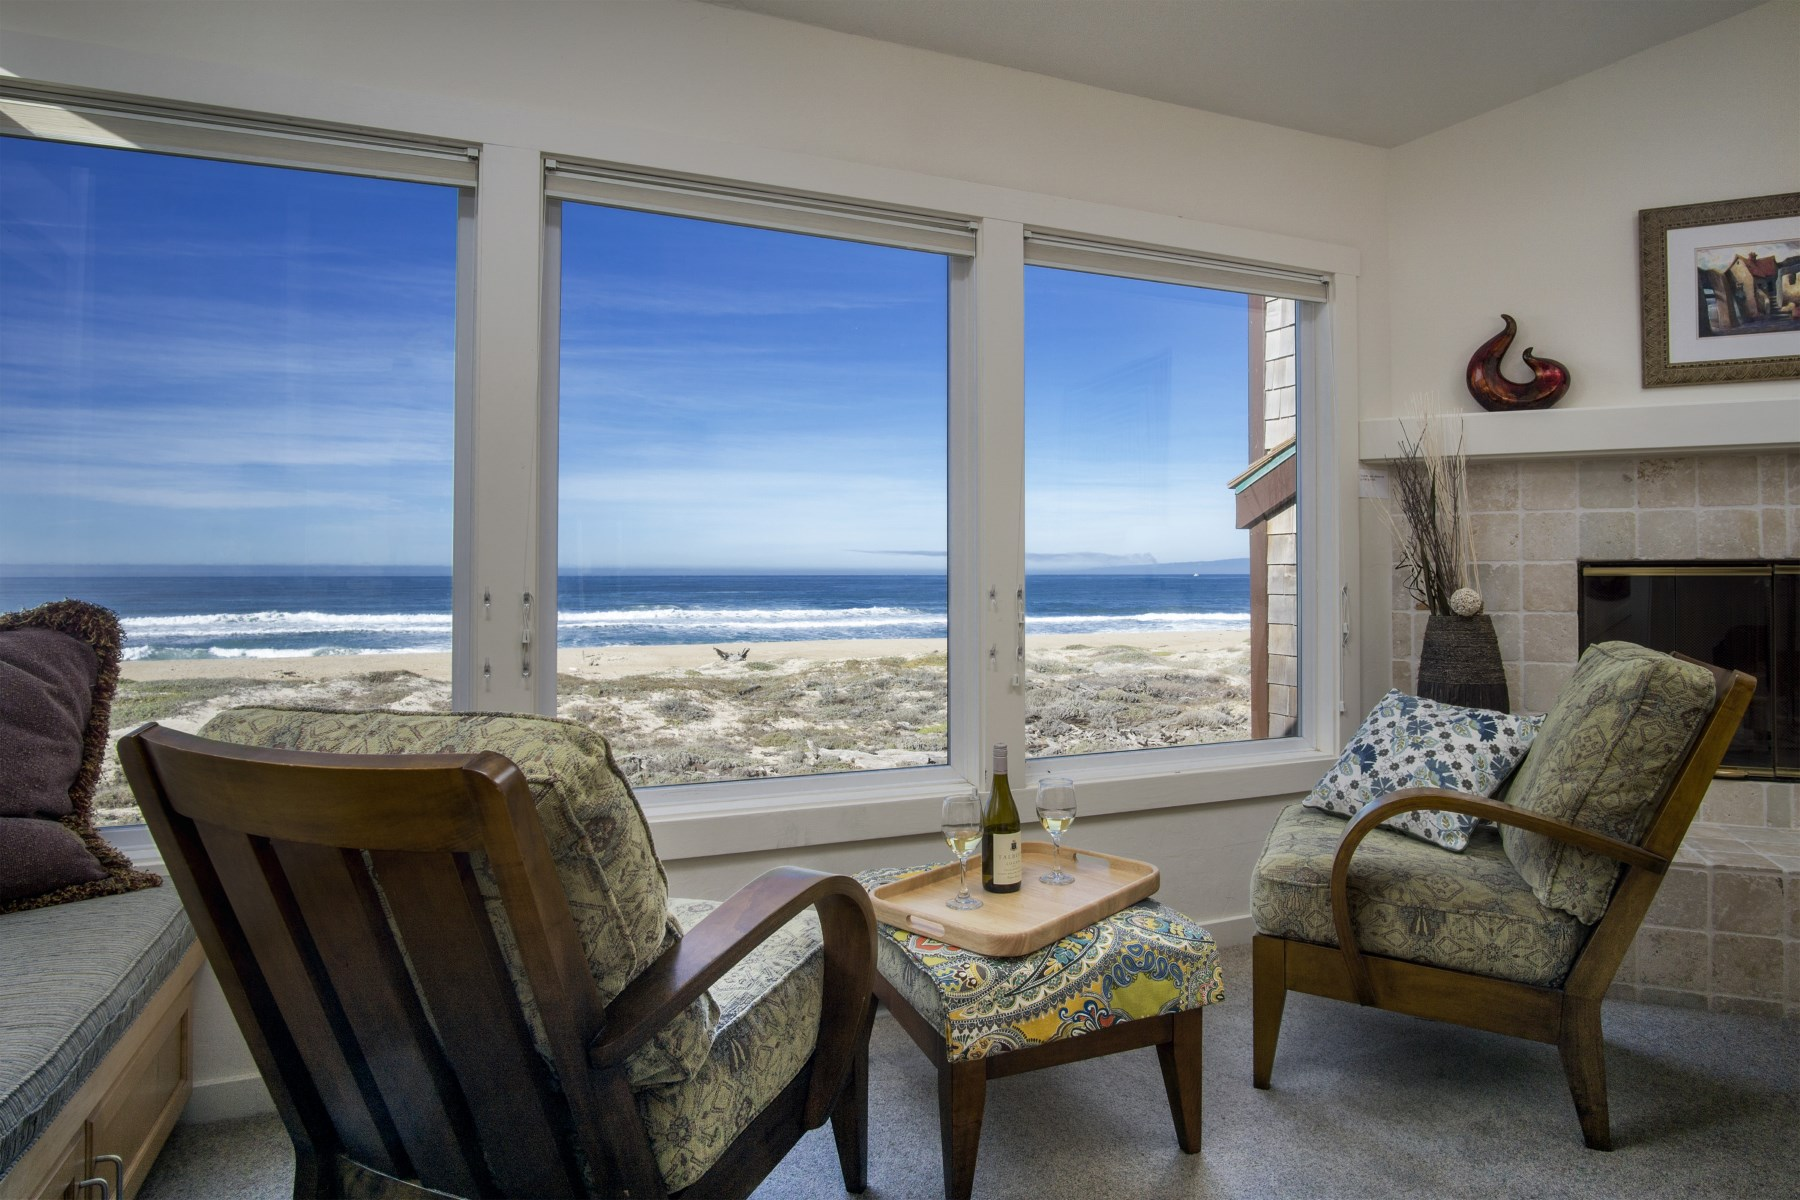 Single Family Home for Sale at Beach House Oceanfront 226 Monterey Dunes Way Moss Landing, California 95039 United States